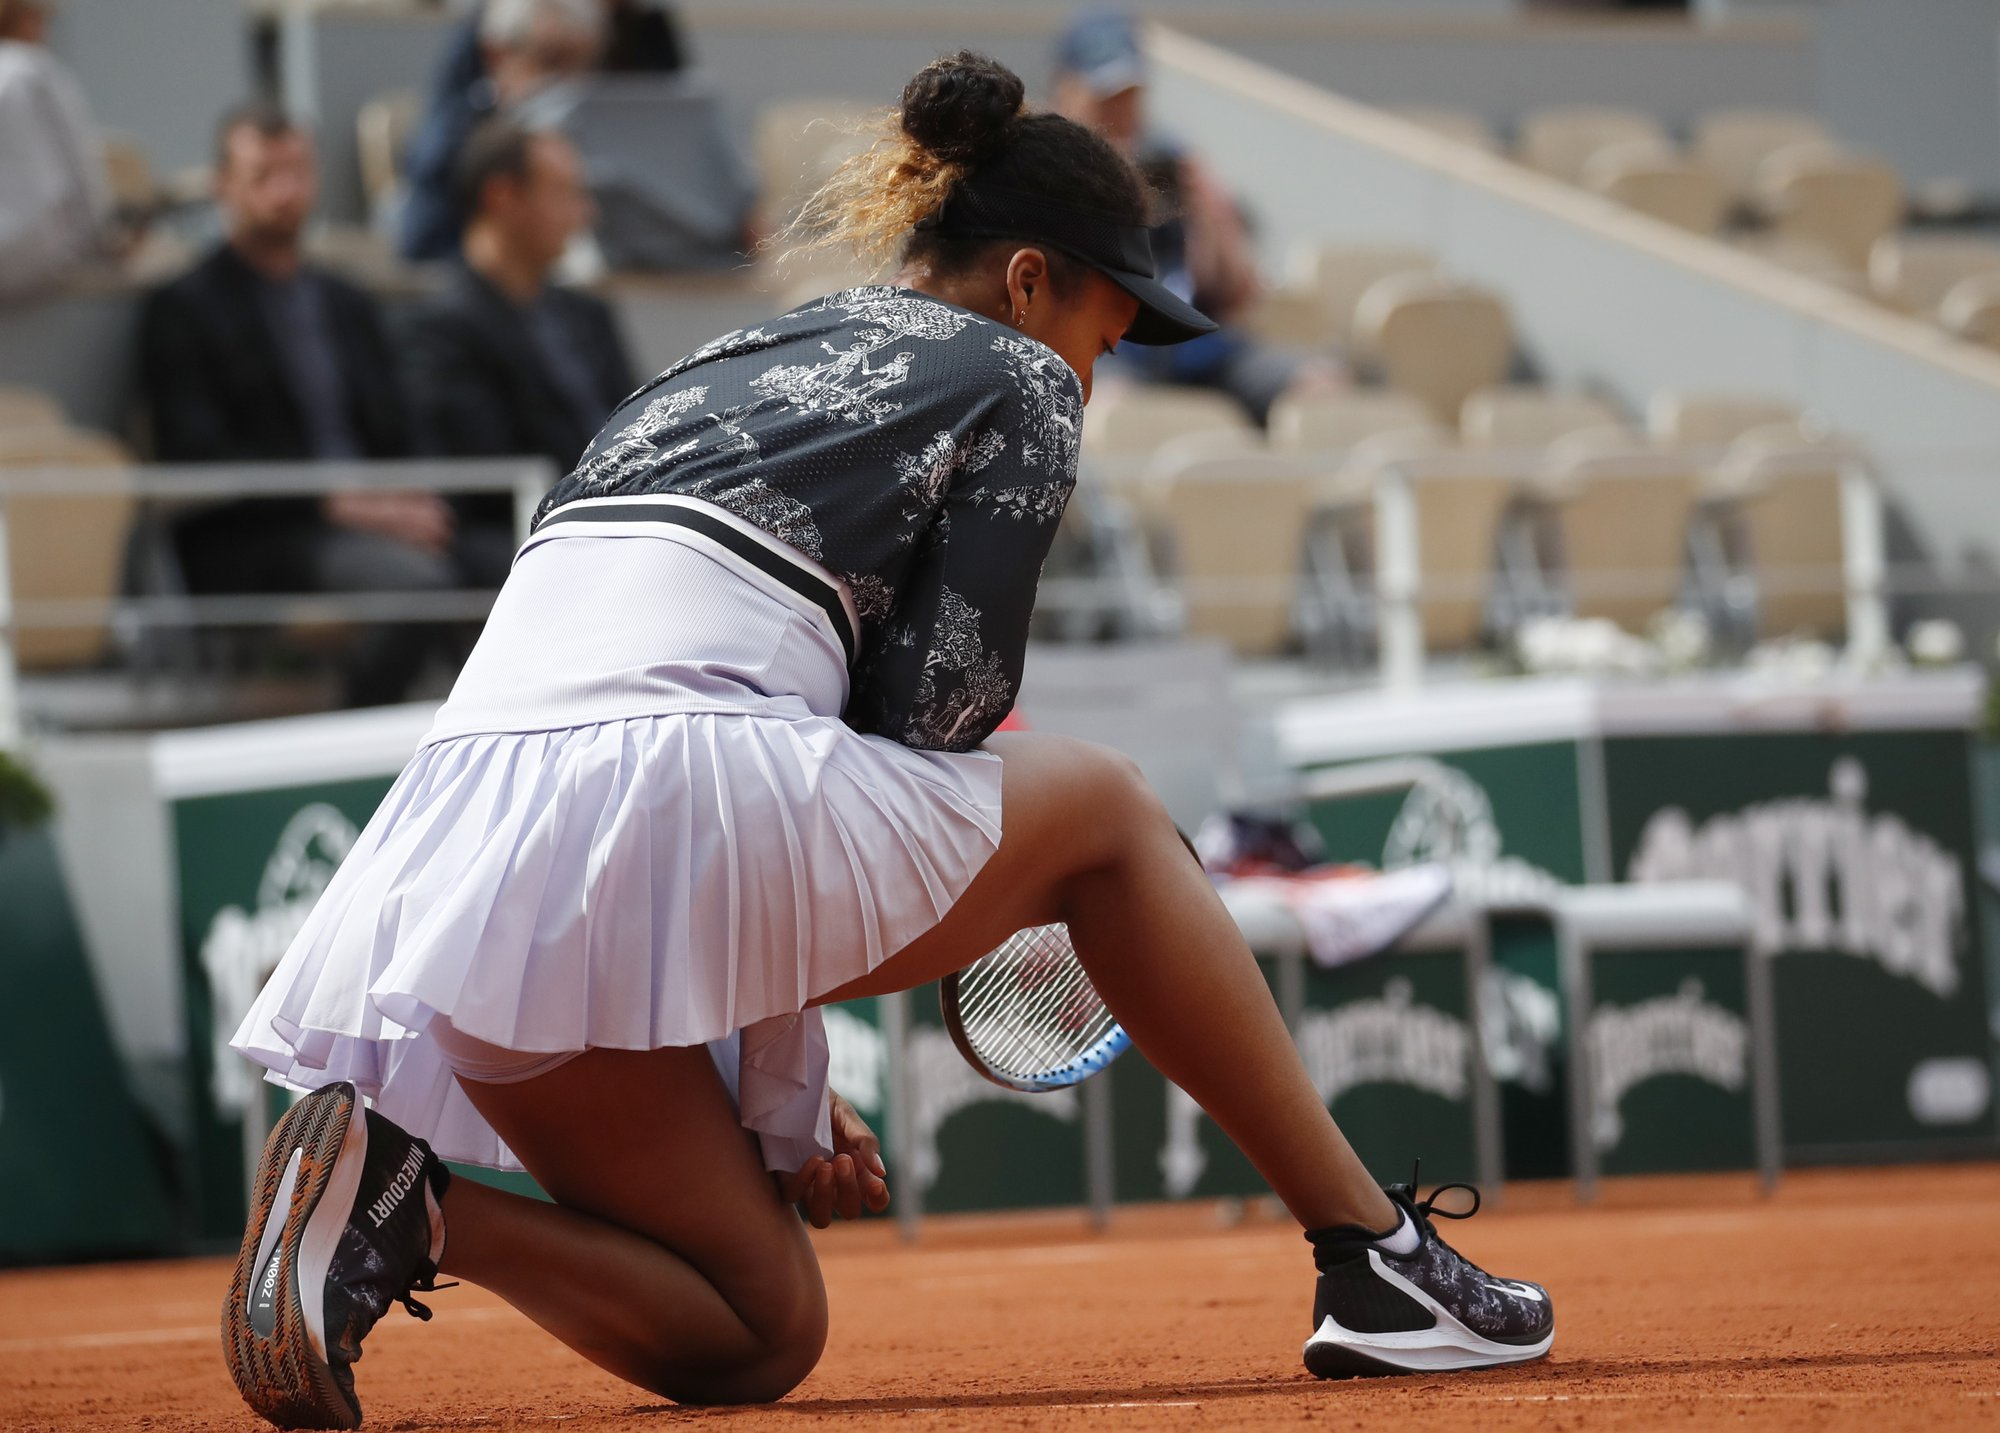 1 but not done: Top-seeded Osaka avoids upset at French Open